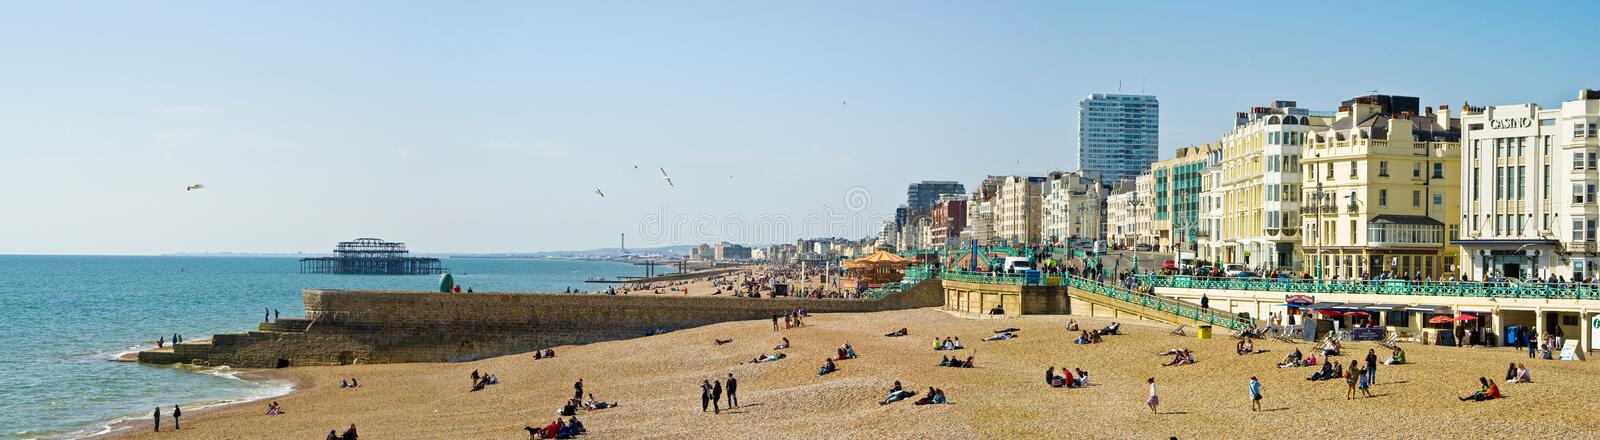 Brighton seafront. And beach seen from the pier, Brighton, England stock images